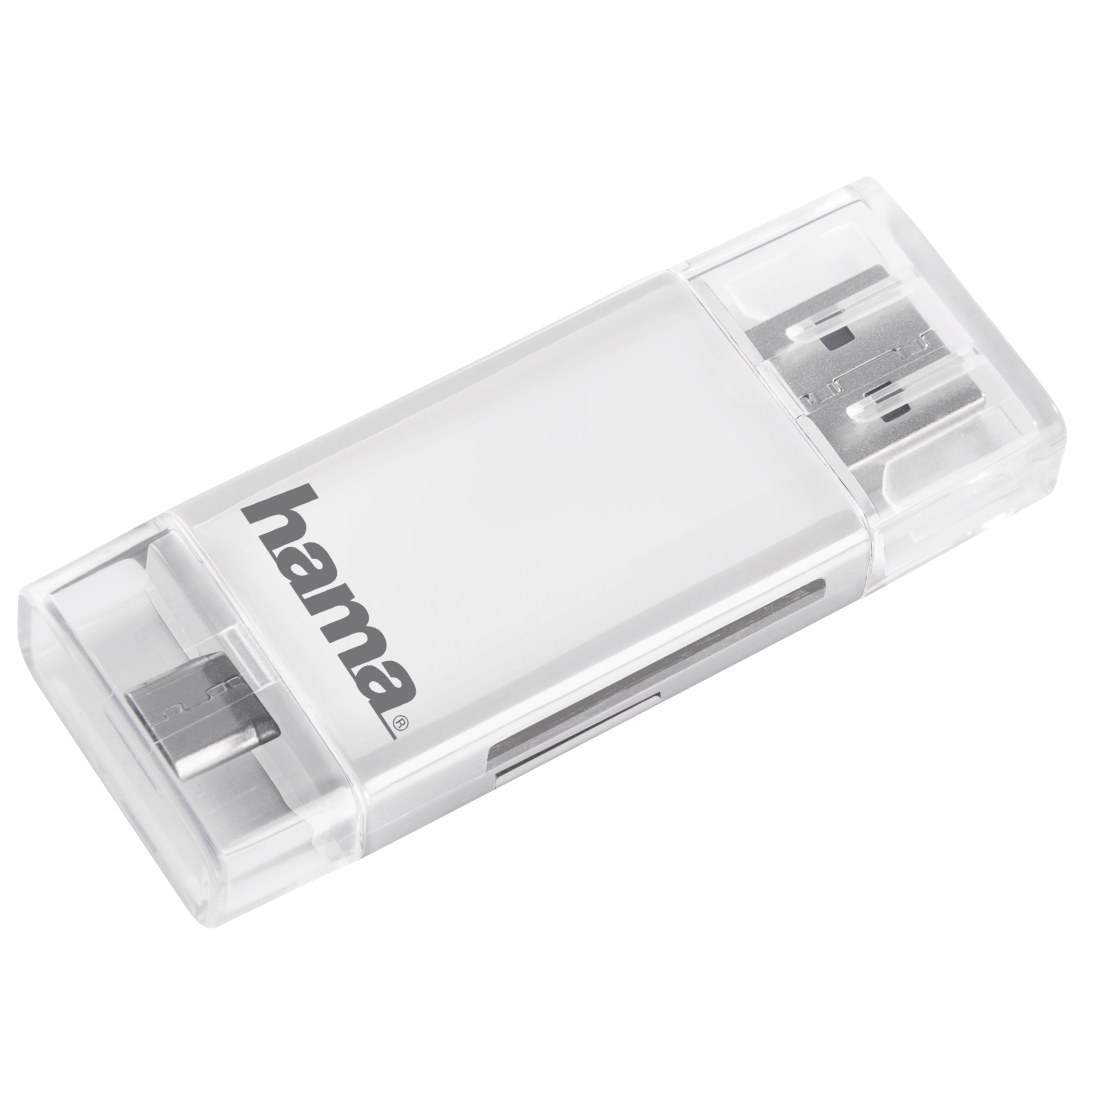 HAMA 9in1 USB 2.0 Card Reader Driver (2019)